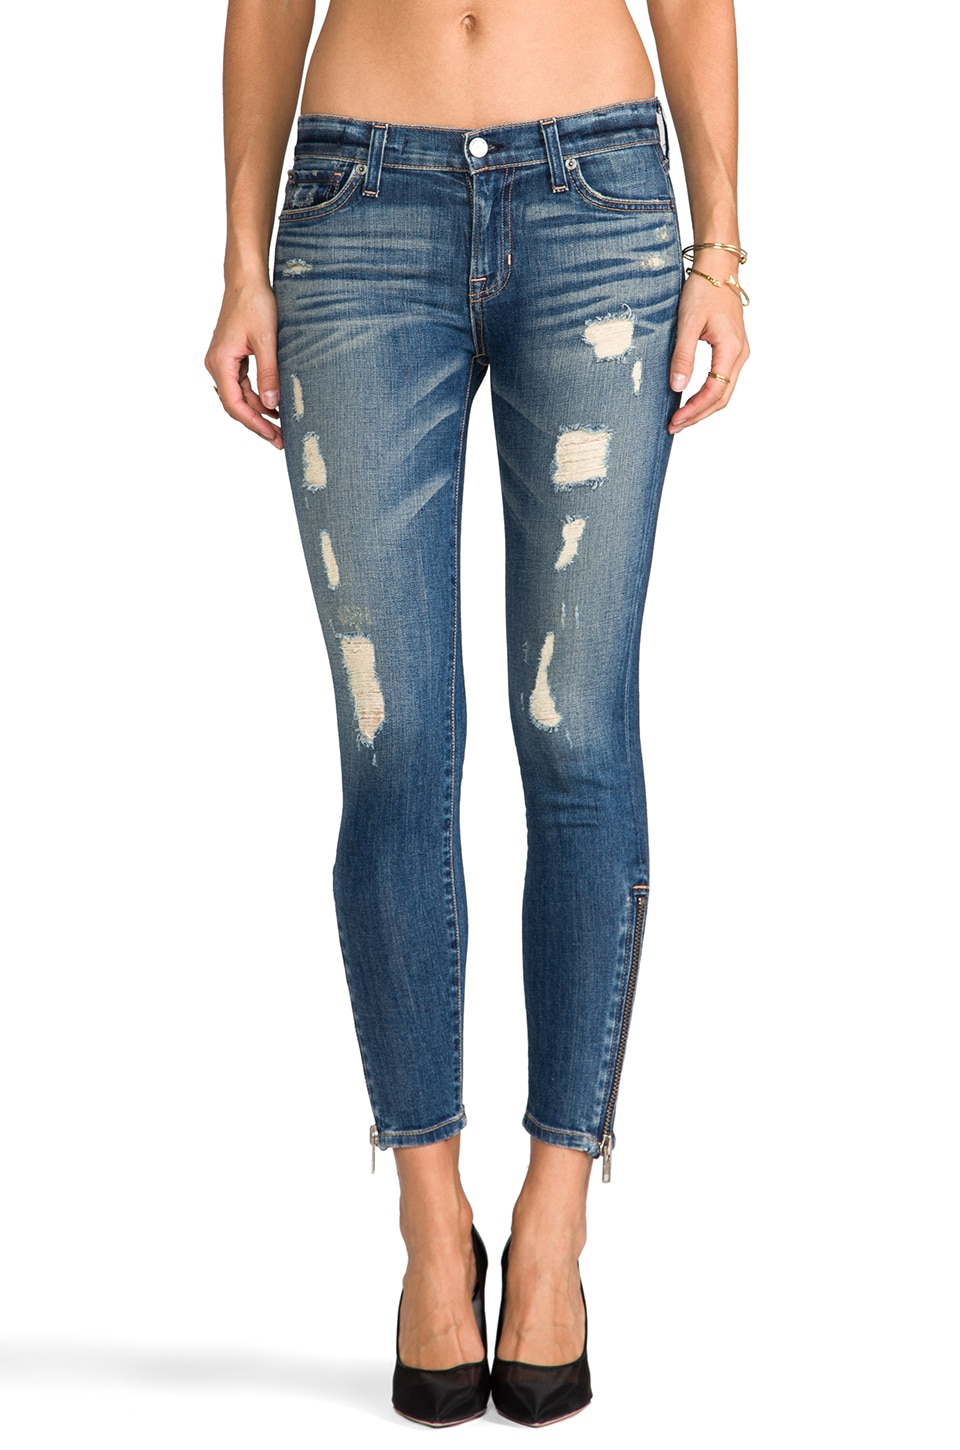 TEXTILE Elizabeth and James Davis Ankle Skinny in Moon Struck